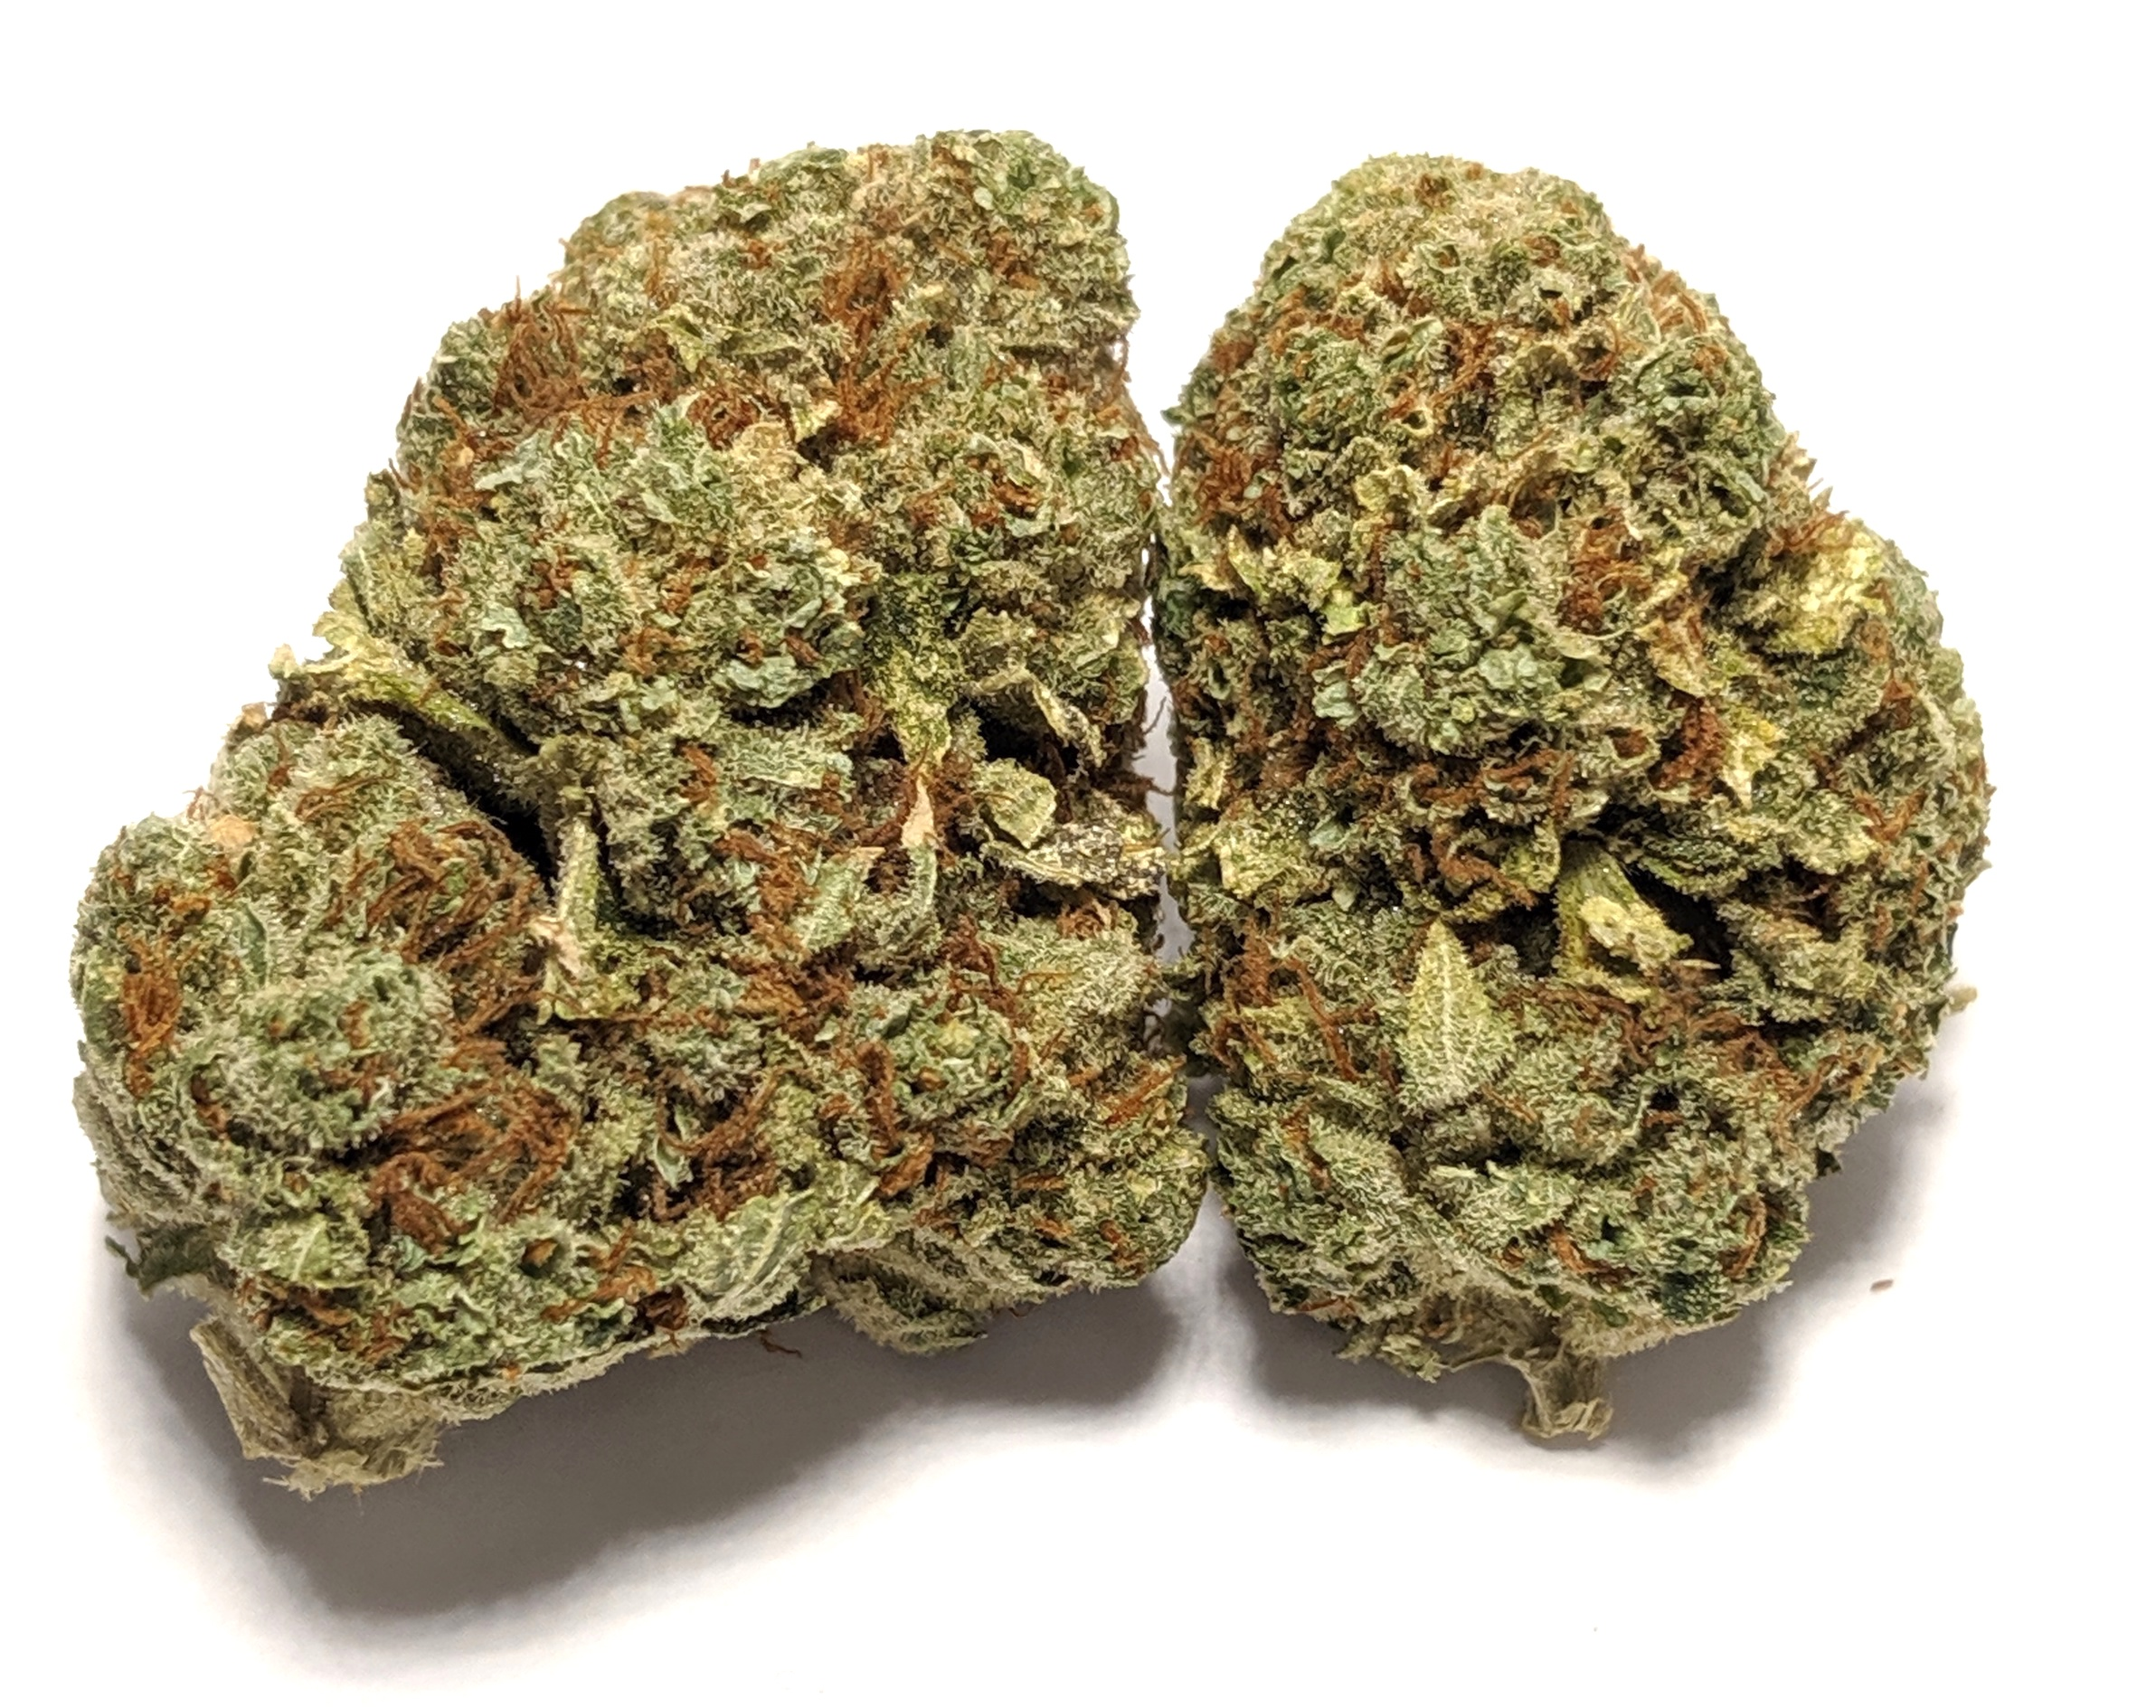 Girl Scout Cookies *BC Drop* Hybrid    1/4-$60 1/2-$110 OZ-$200   GSC, formerly known as Girl Scout Cookies, is an OG Kush and Durban Poison hybrid cross whose reputation grew too large to stay within the borders of its California homeland. With a sweet and earthy aroma, GSC launches you to euphorias top floor where full-body relaxation meets a time-bending cerebral space. A little goes a long way with this hybrid, whose THC heights have won GSC numerous Cannabis Cup awards. Patients needing a strong dose of relief, however, may look to GSC for severe pain, nausea, and appetite loss. There are several different phenotypes of the GSC strain including Thin Mint and Platinum Cookies, which exhibit some variation in appearance and effect. Typically, however, GSC expresses its beauty in twisting green calyxes wrapped in purple leaves and fiery orange hairs.